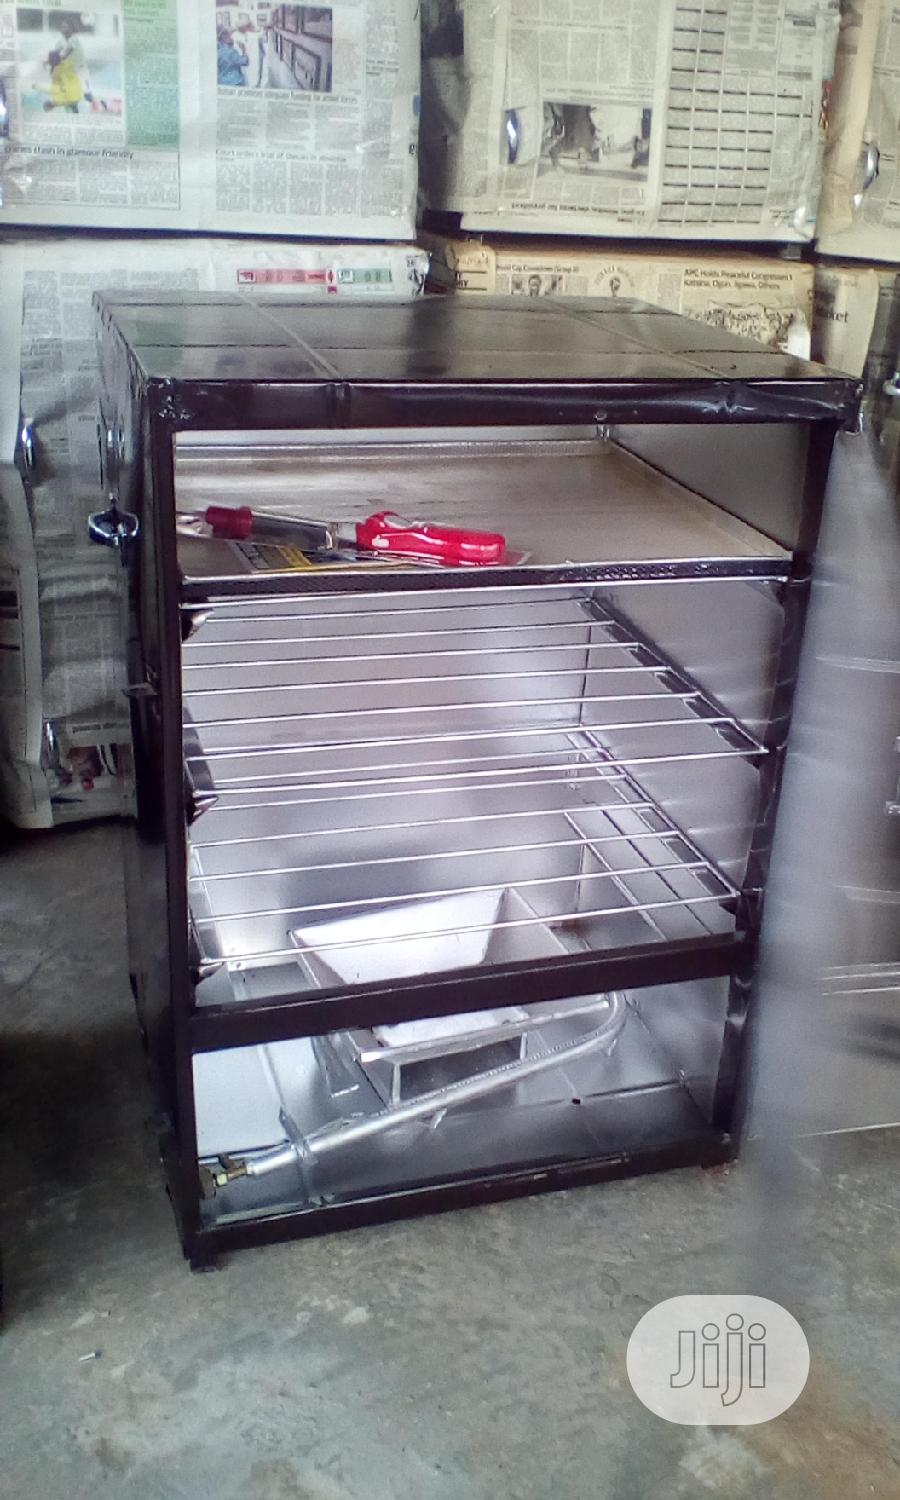 Easytech Charcoal And Gas Oven Enterprises